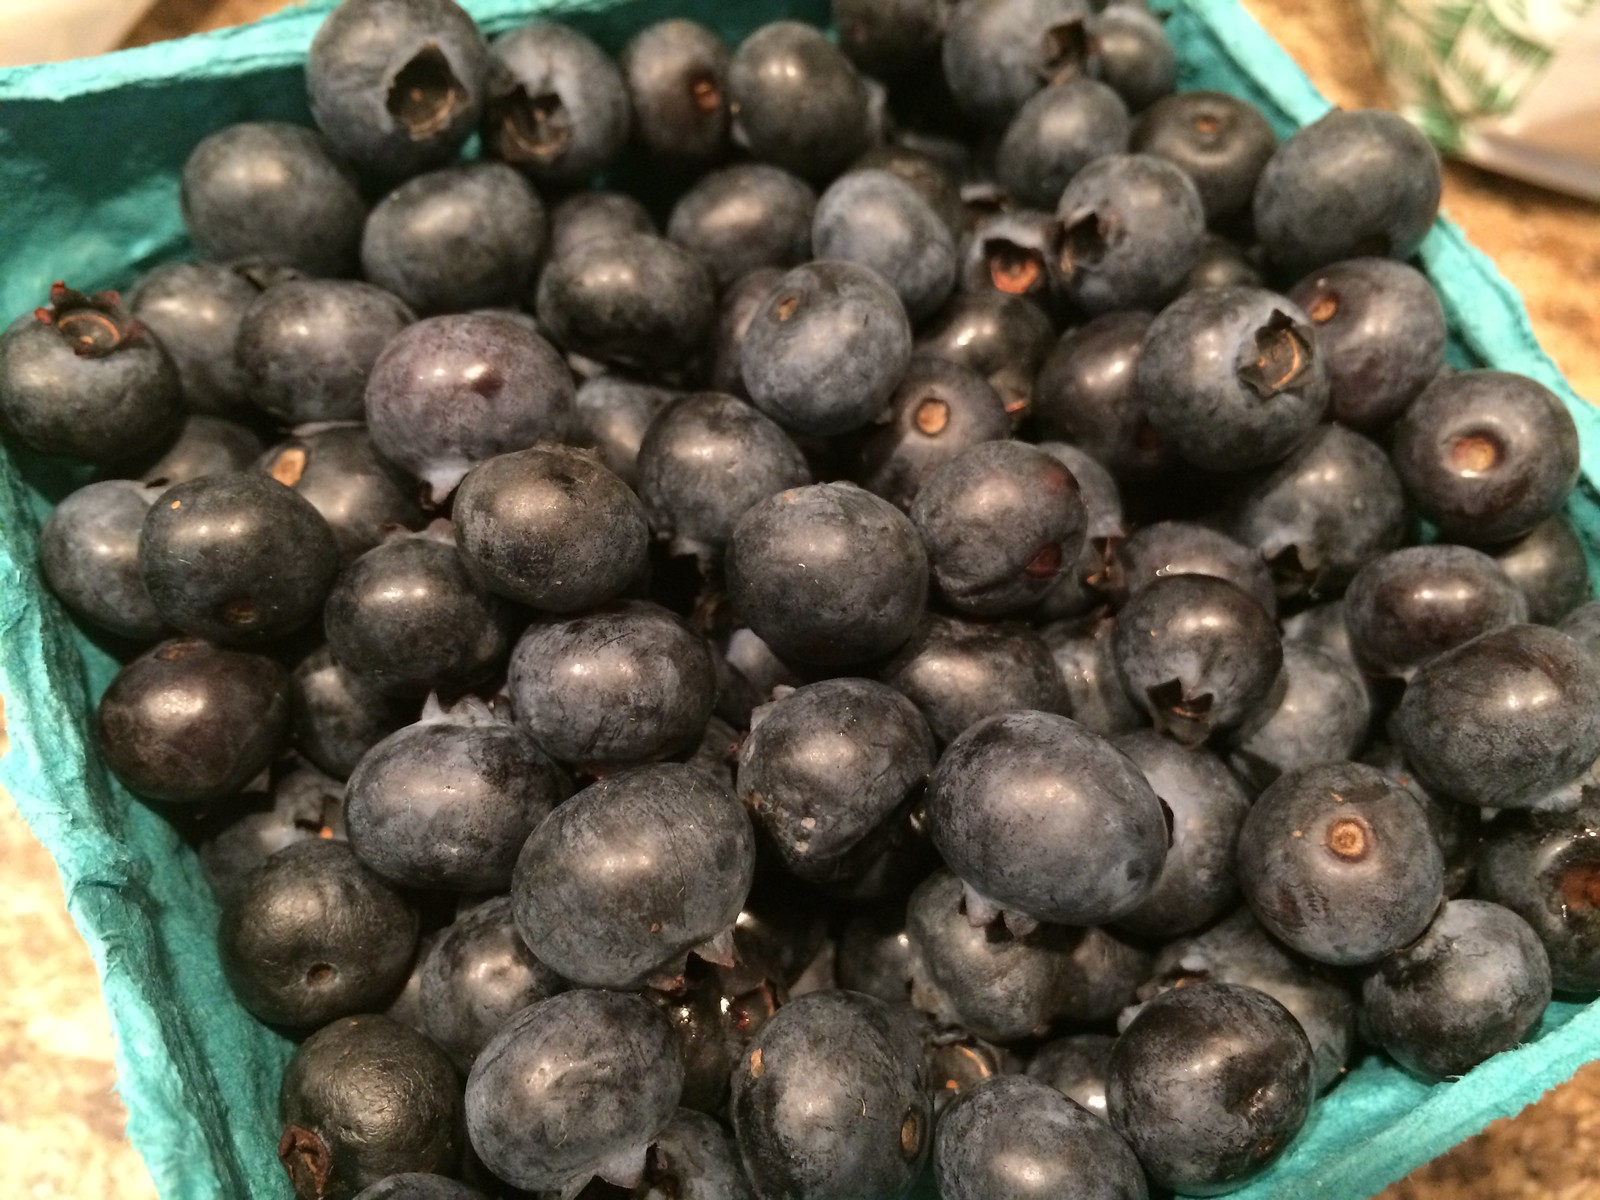 Dorothy's blueberries